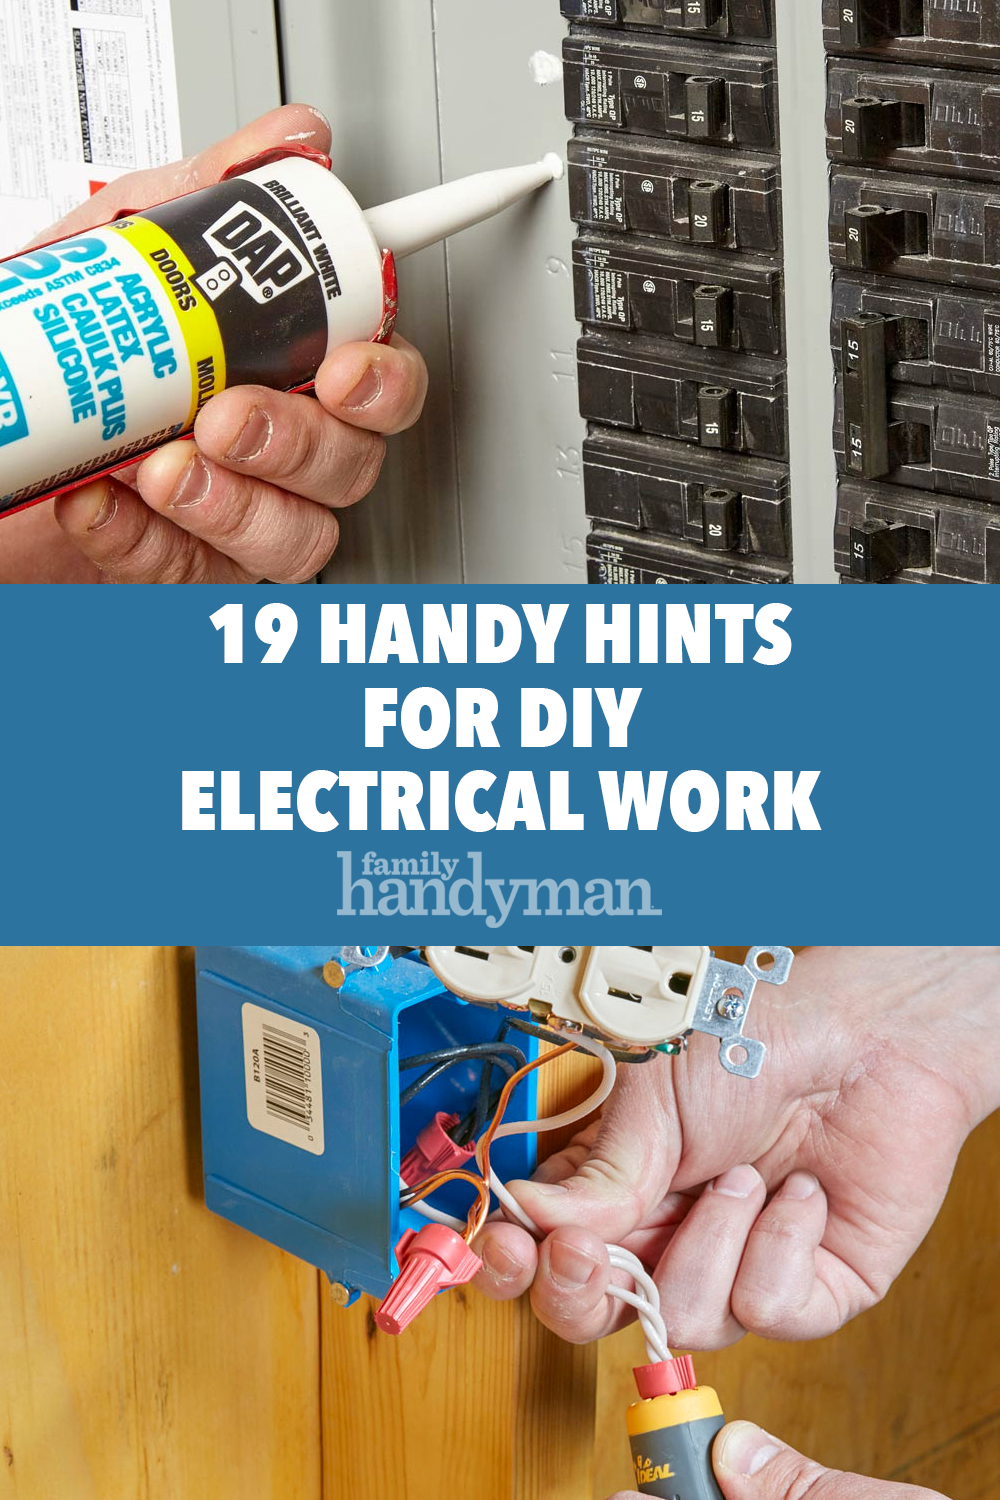 19 Handy Hints For Diy Electrical Work Diy Electrical Electrical Work Electricity